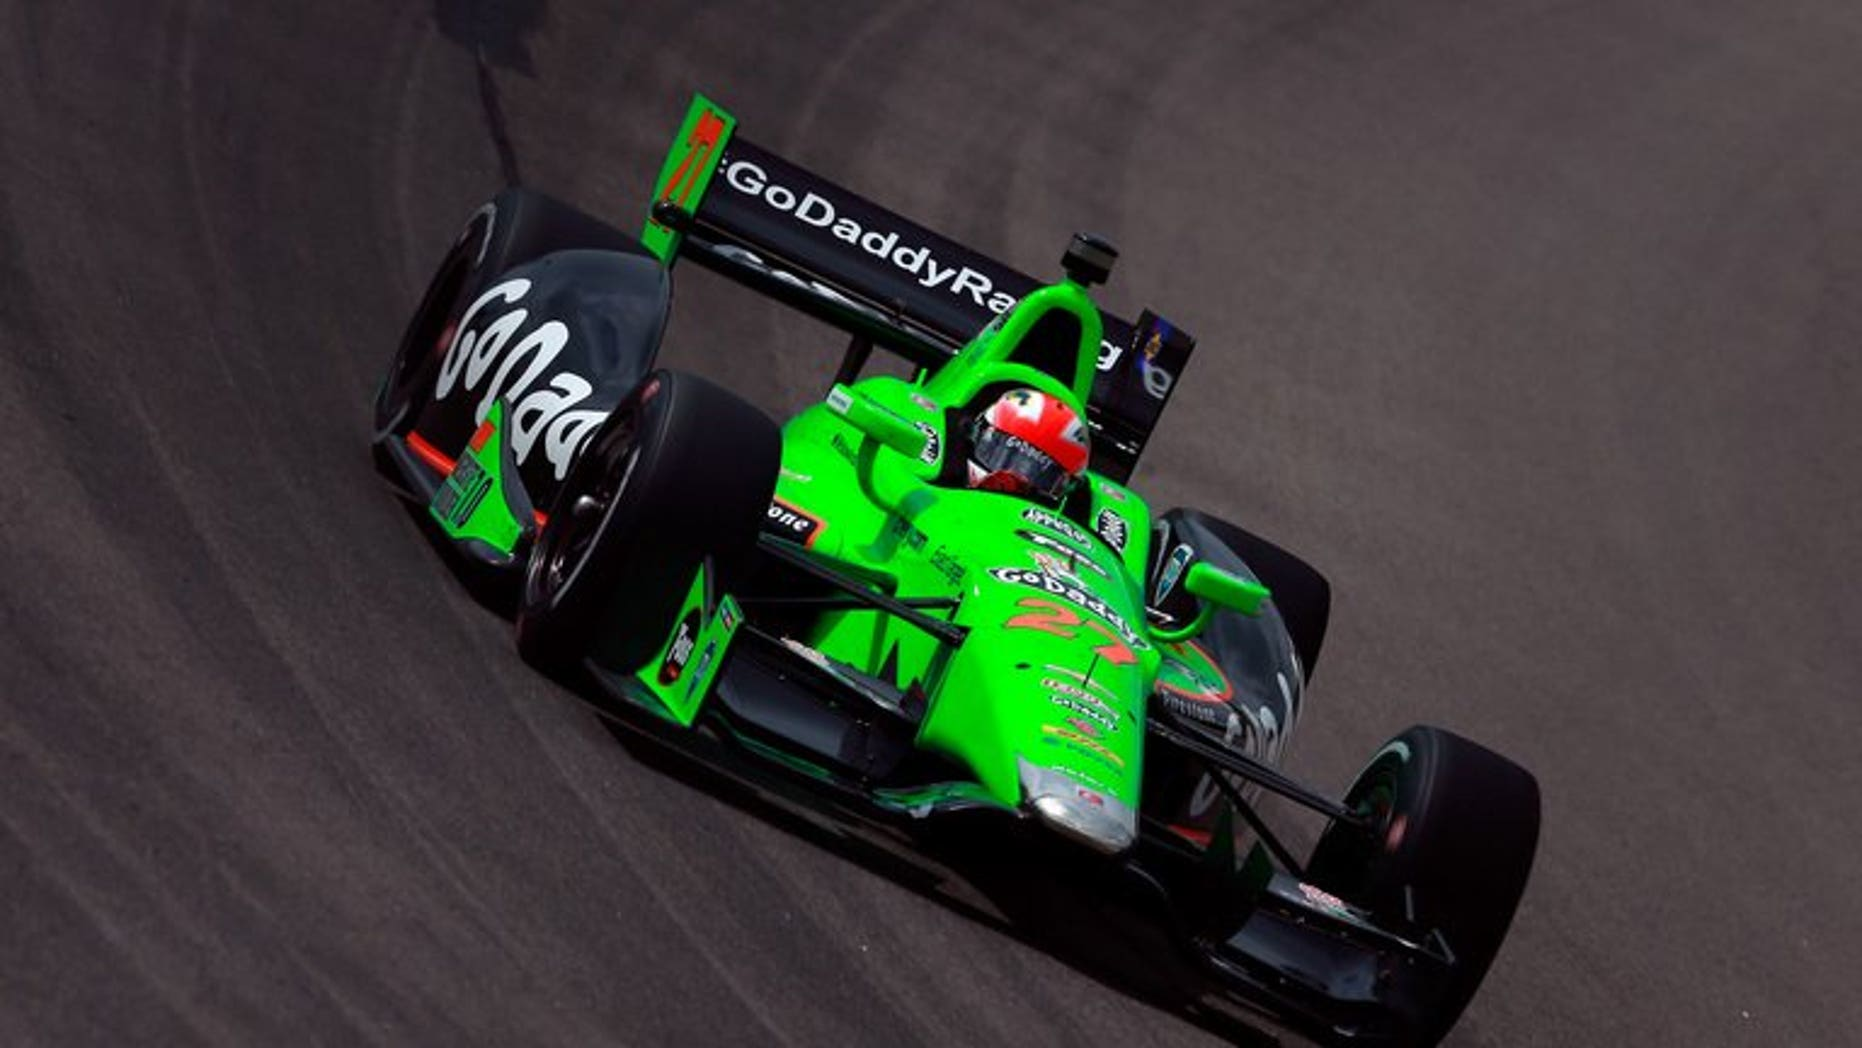 James Hinchcliffe of Canada drives the #27 GoDaddy Andretti Autosport Chevrolet during practice for the Iowa Corn Indy 250 at Iowa Speedway on June 22, 2013 in Newton, Iowa. Hinchcliffe won the Iowa Corn Indy 250 on Sunday, collecting his season-high third victory of the IndyCar campaign and his first career oval-course triumph in the series.